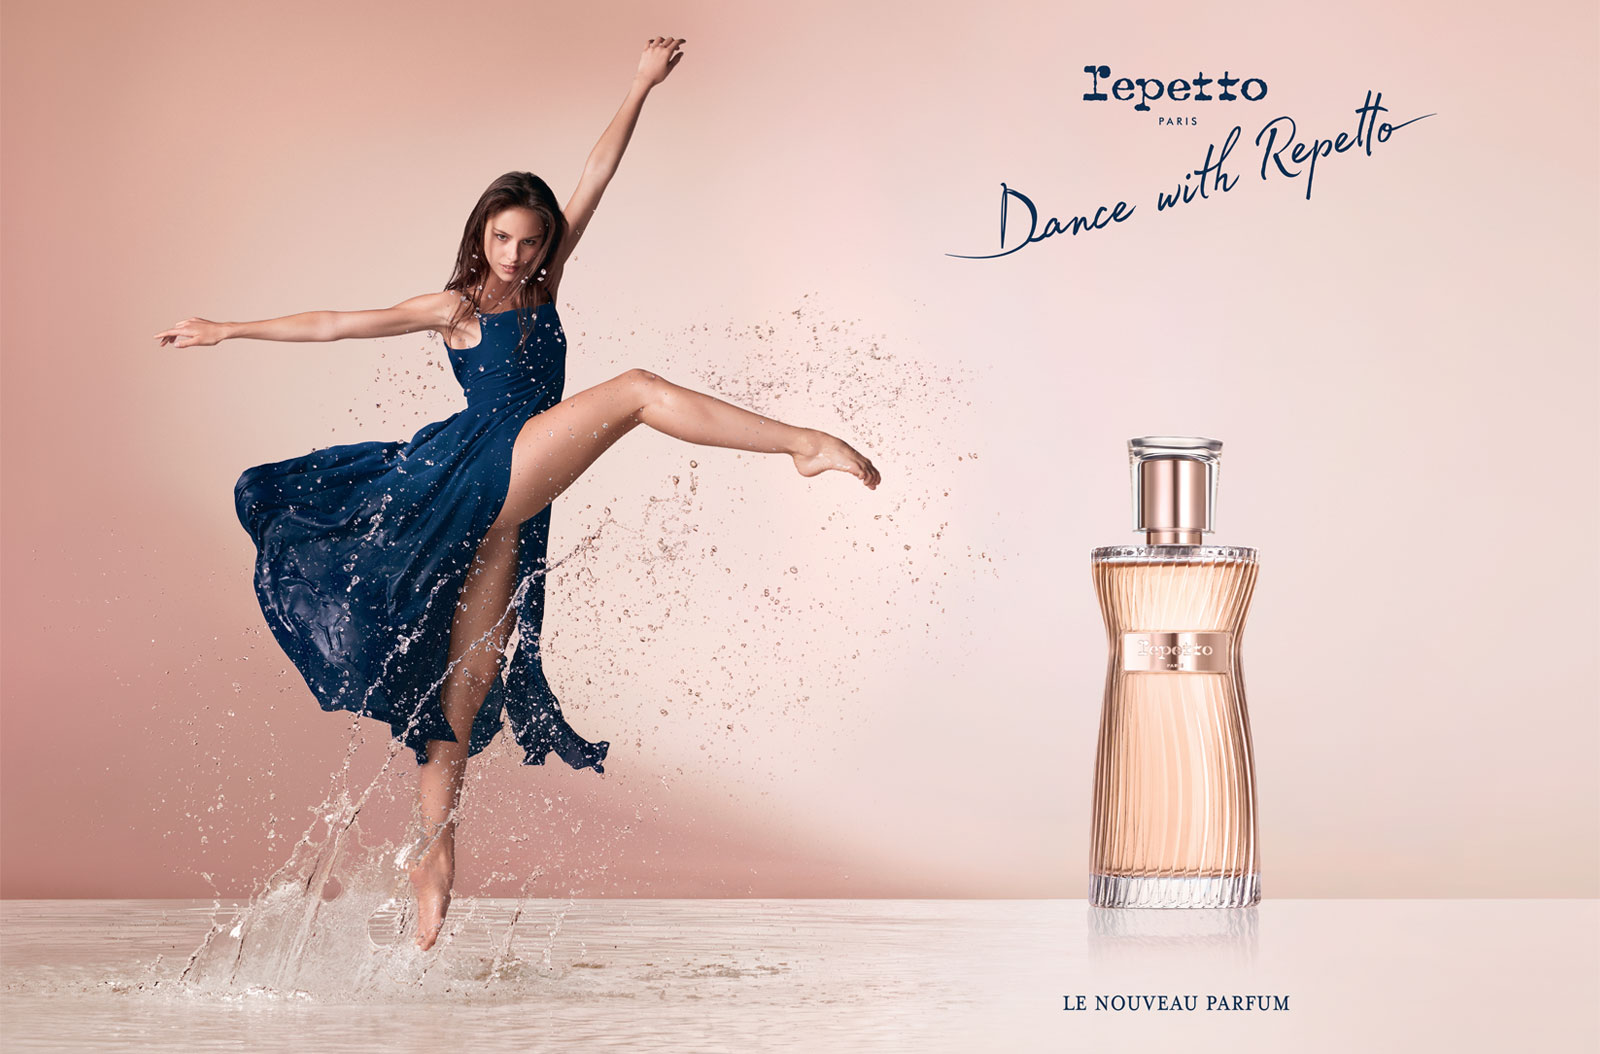 repetto dance with repetto